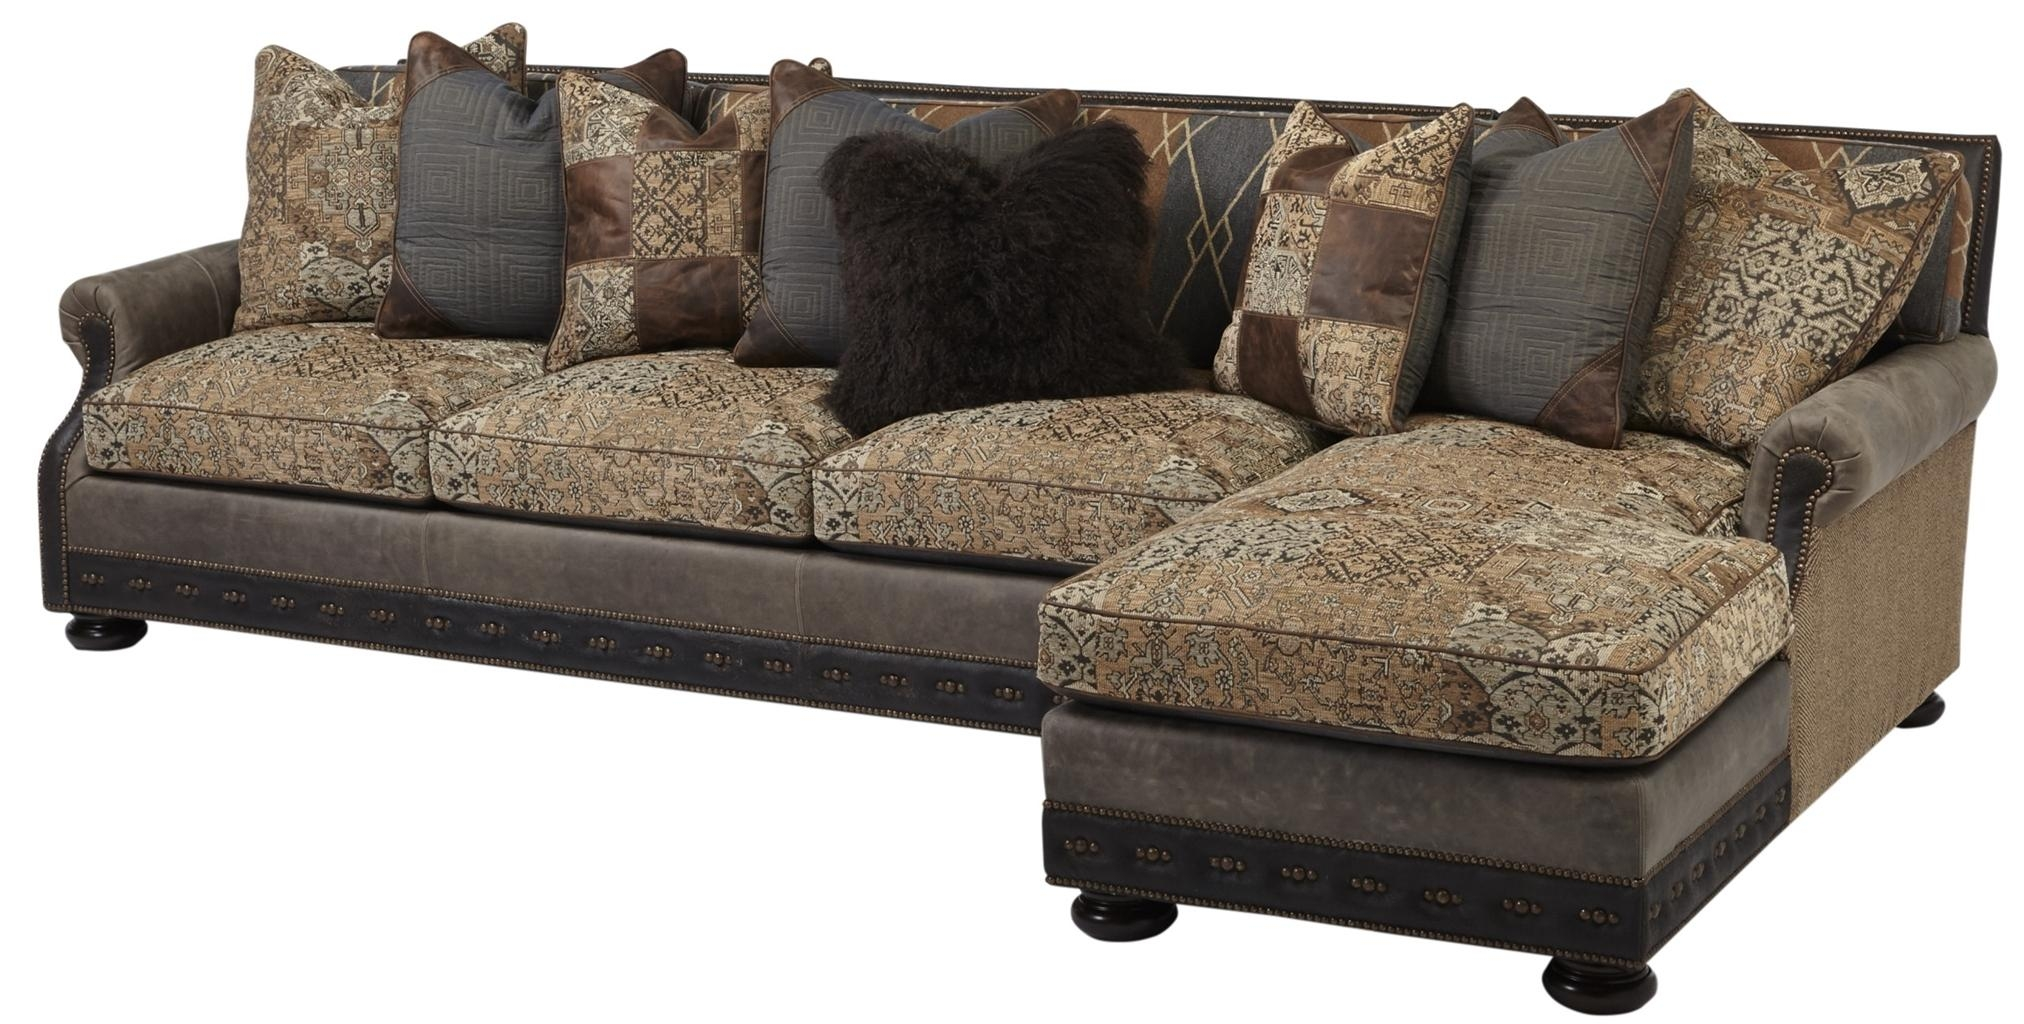 Cool Sofa With Chaise Lounge. High End Furnishings (View 10 of 20)